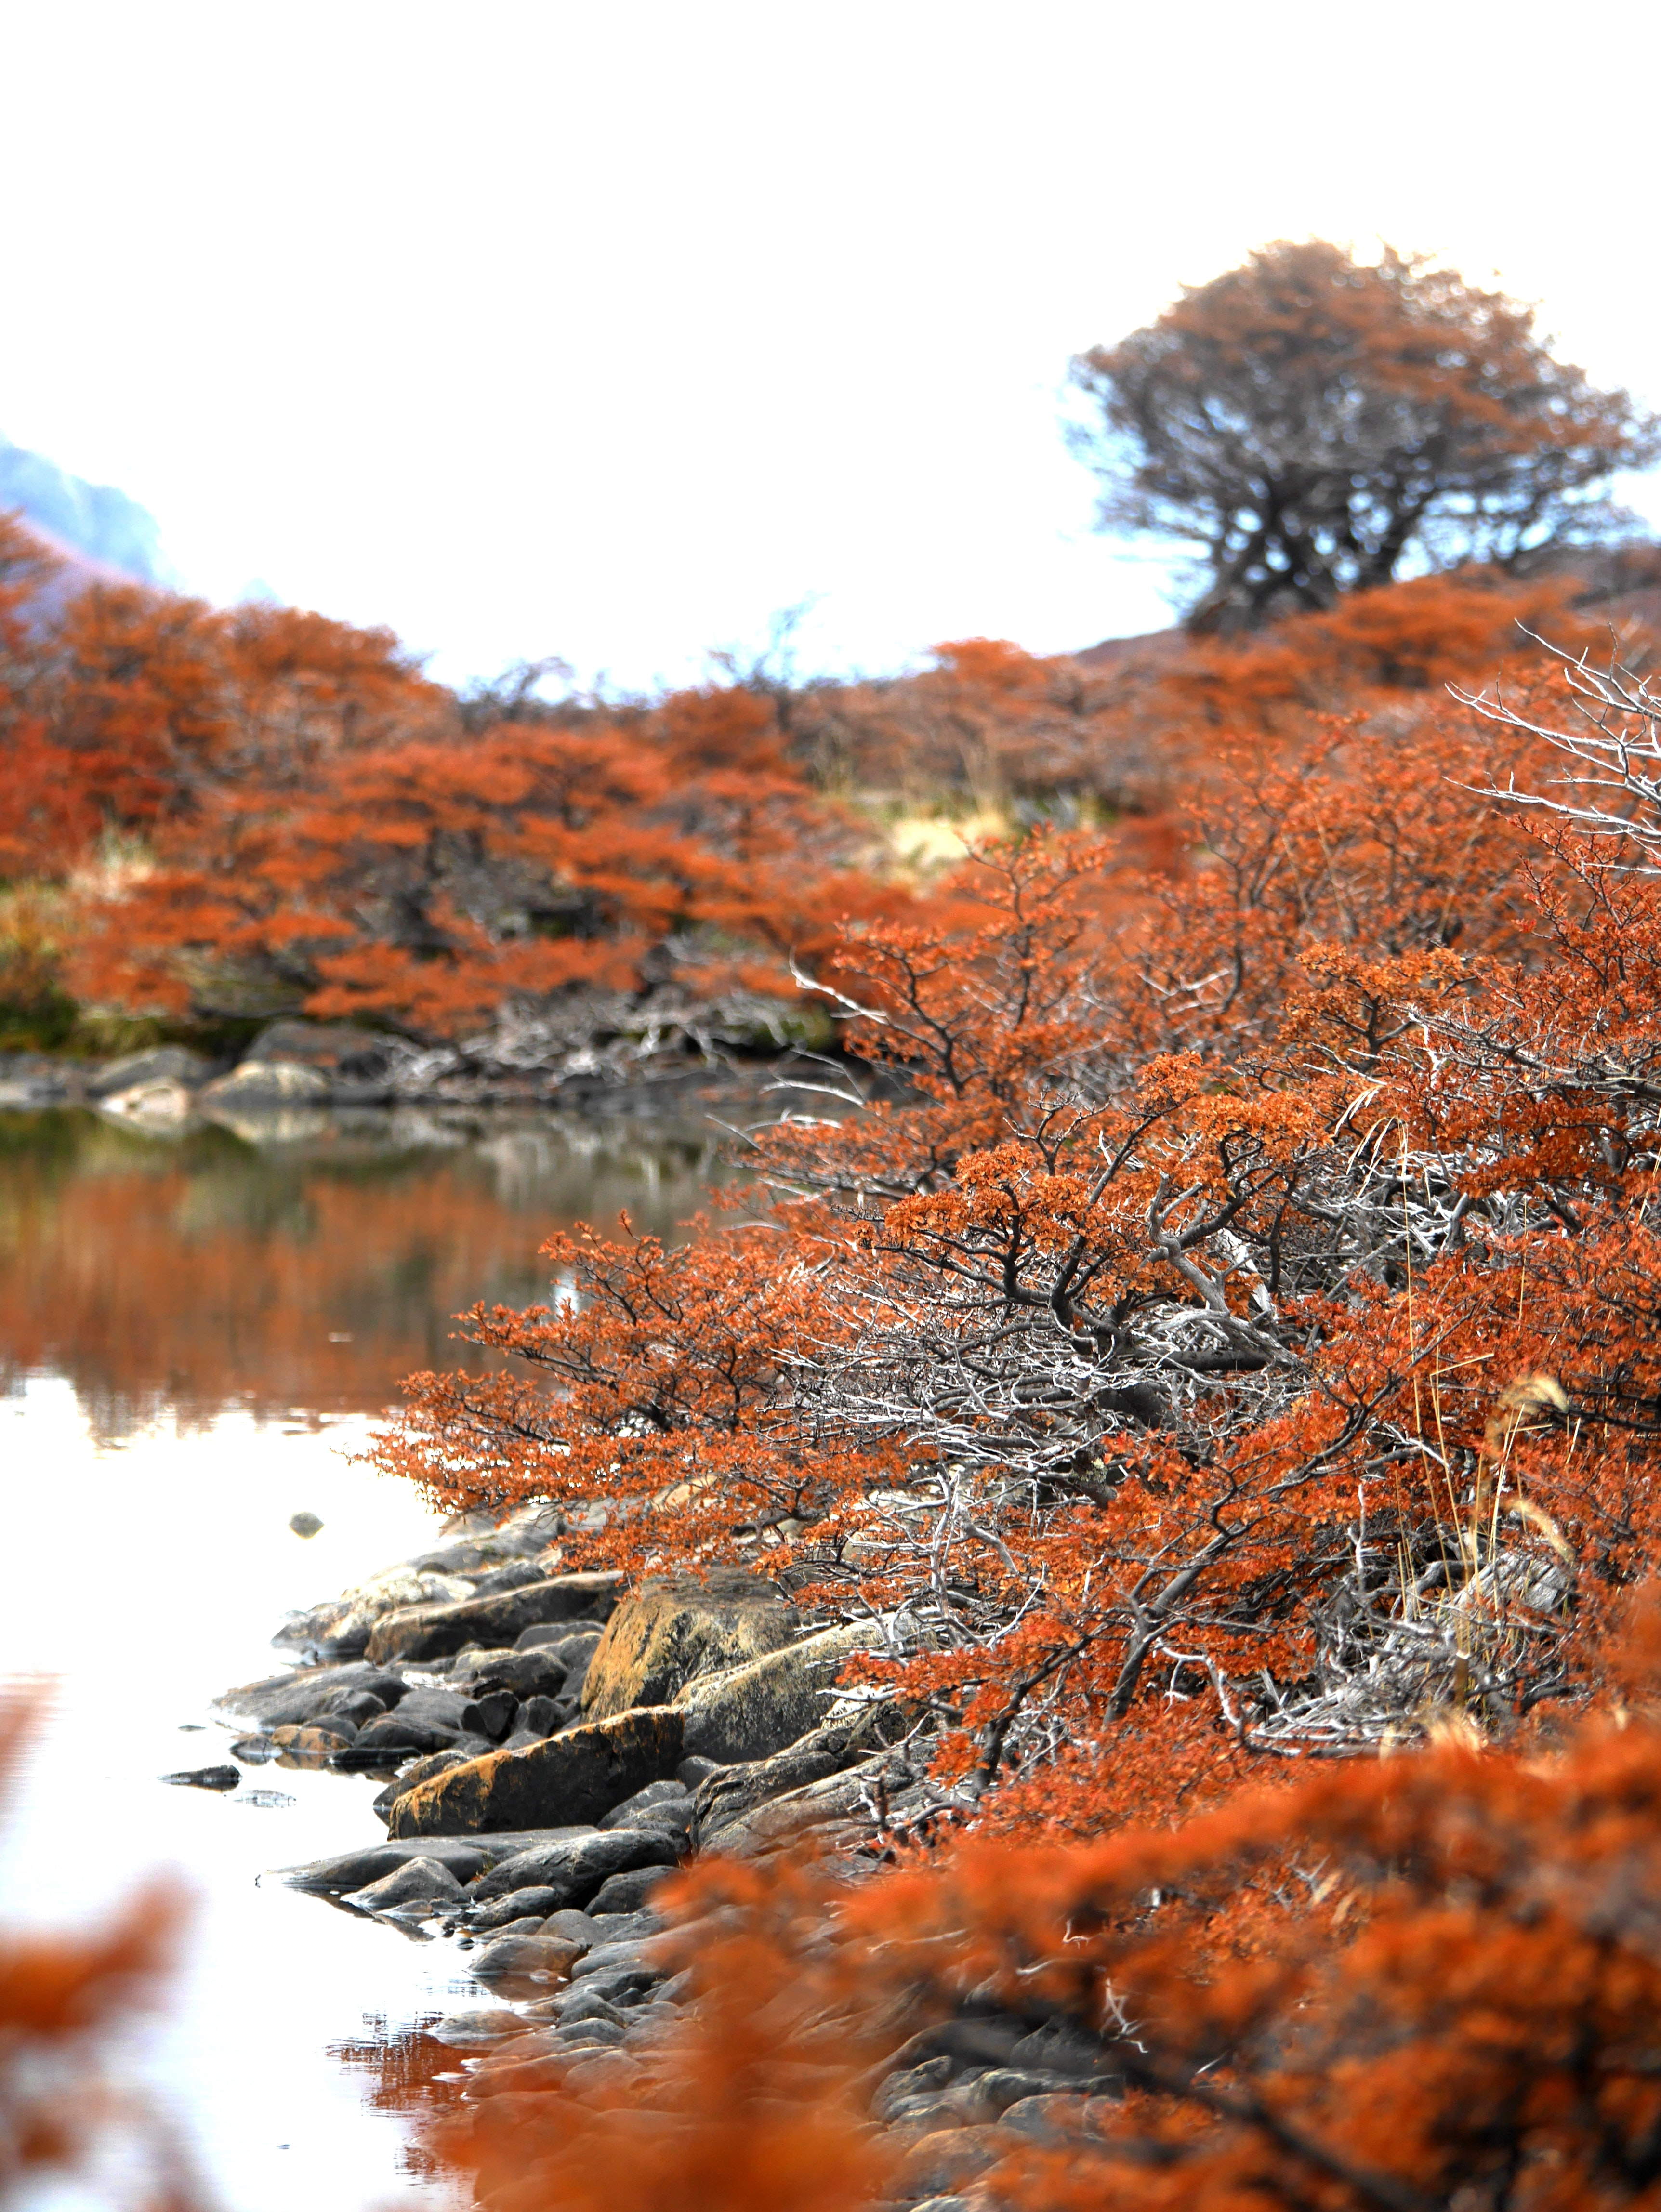 shallow focus photography of orange leafed trees